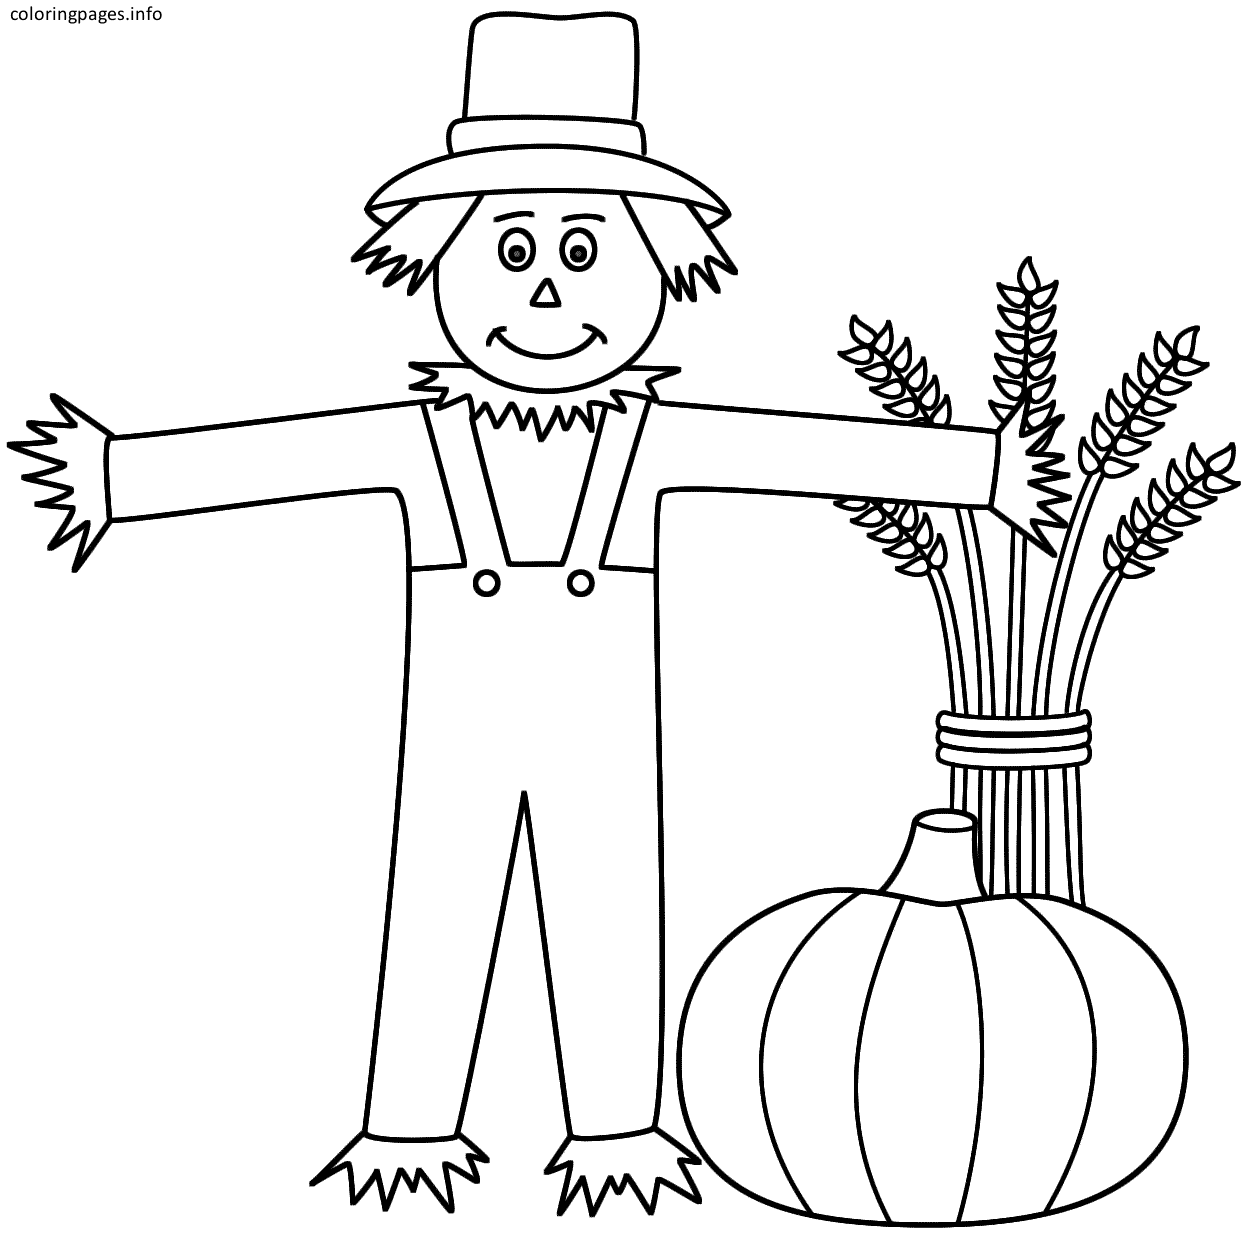 scarecrow and pumpkin coloring pages | Fall/Thanksgiving Theme ...